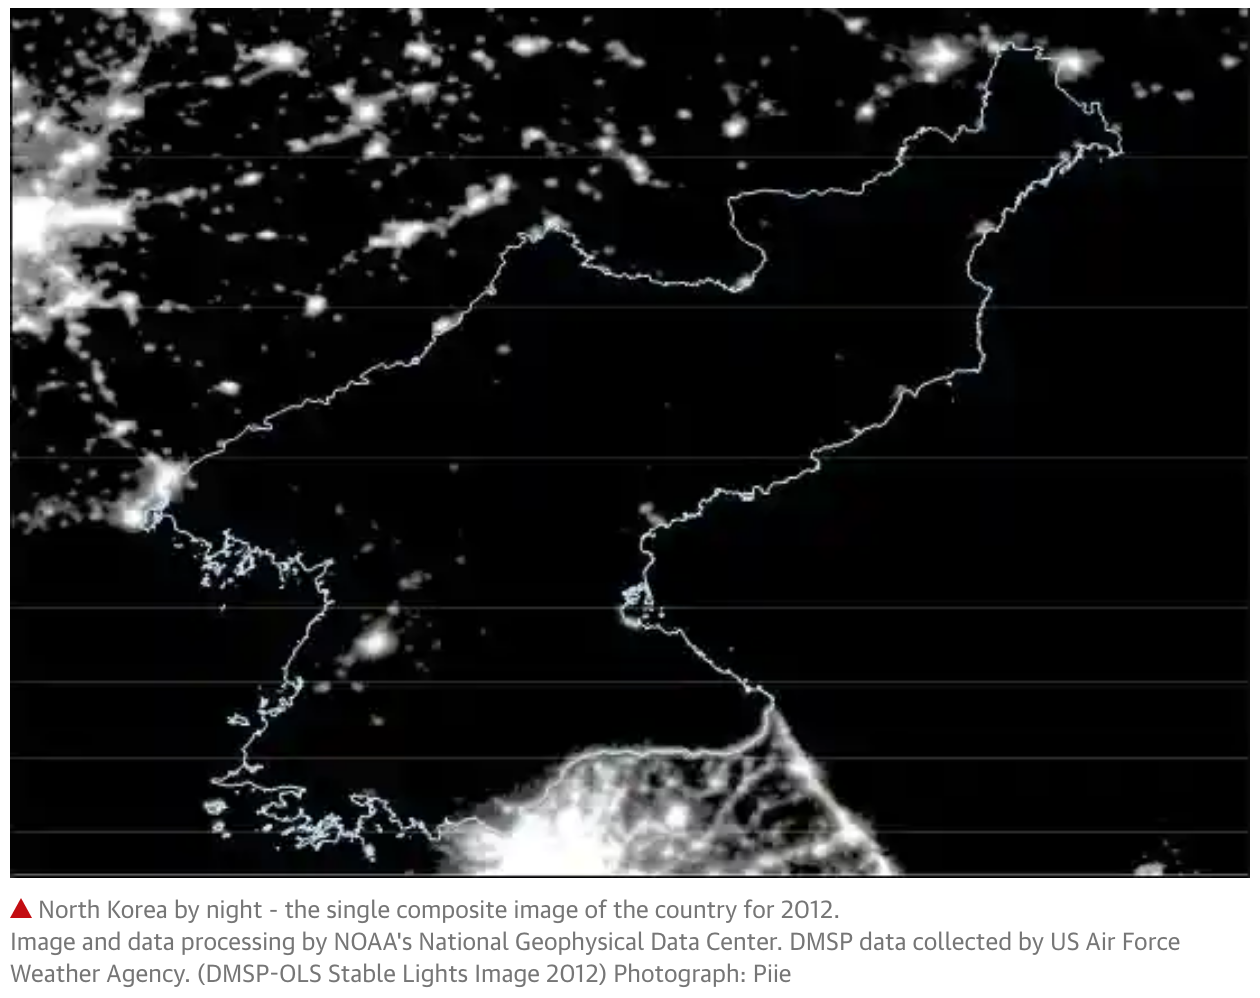 North Korea by night: satellite images shed new light on the secretive state